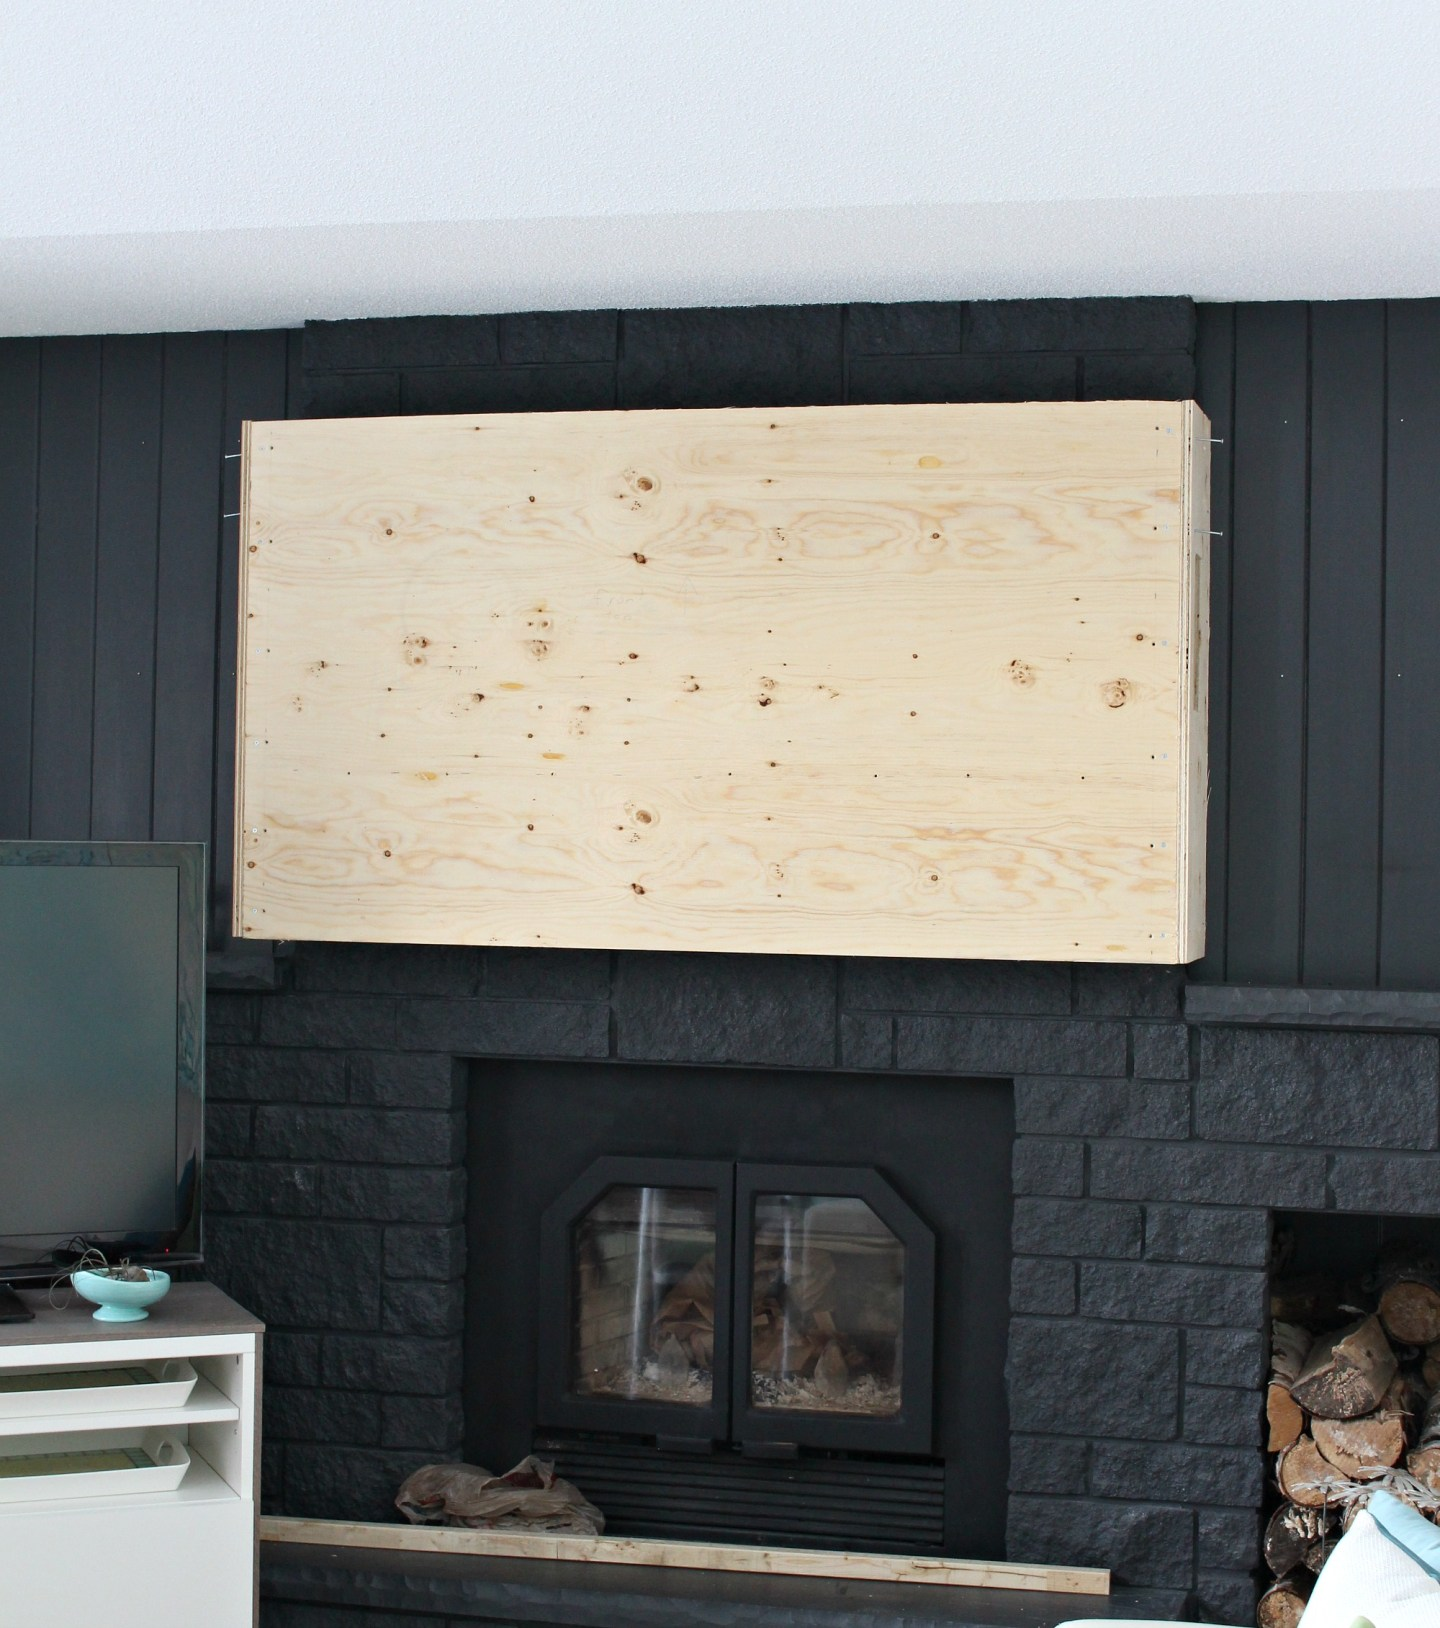 How to Build a Fireplace Bump Out to Hang a TV | How to Hang a TV over Fireplace When Mantle is Too High | Fireplace Hack by Dans le Lakehouse